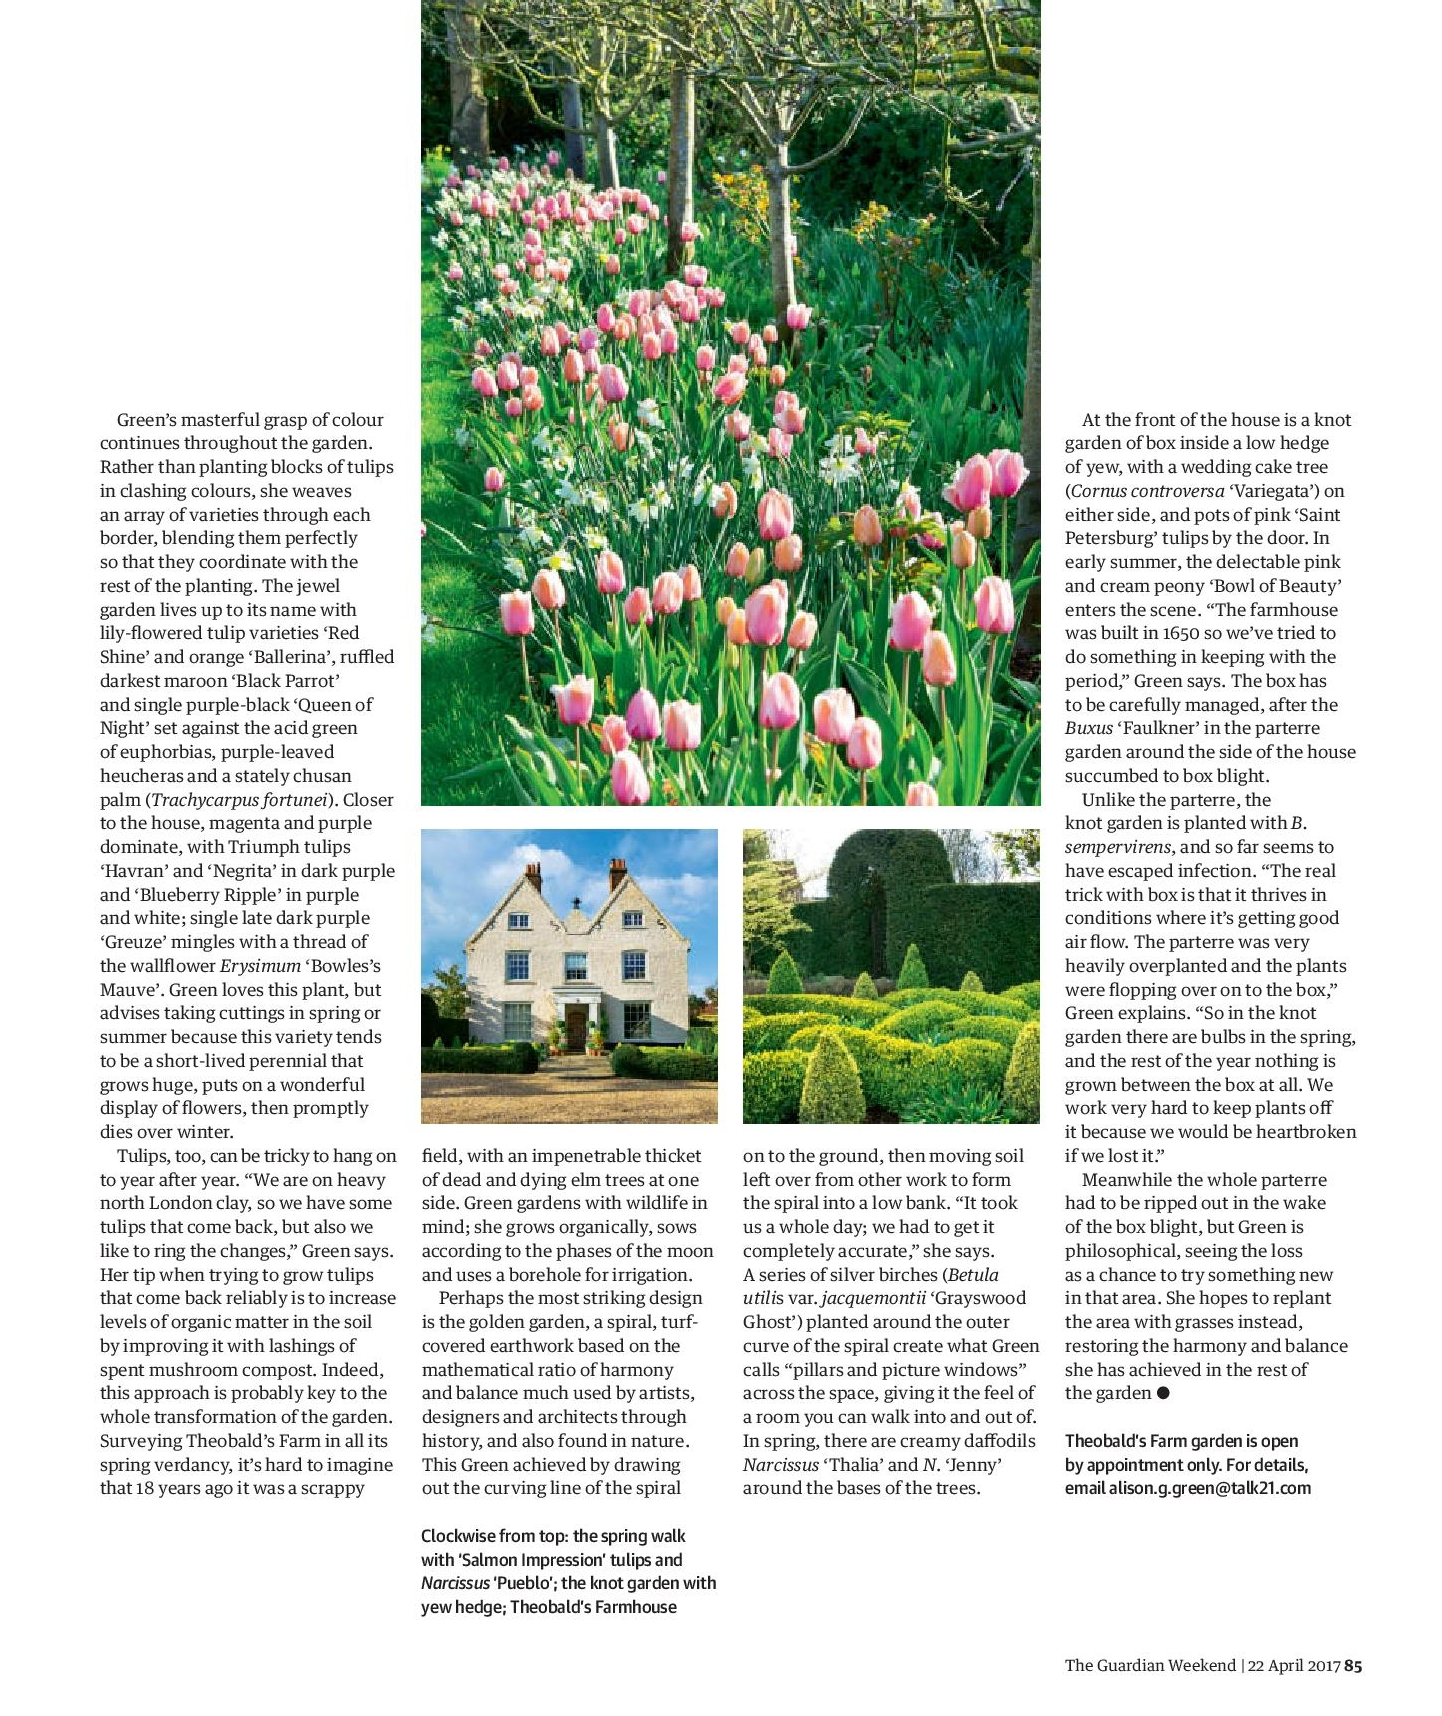 GDN_20170422_null_Weekend Magazine_01_85-page-001.jpg